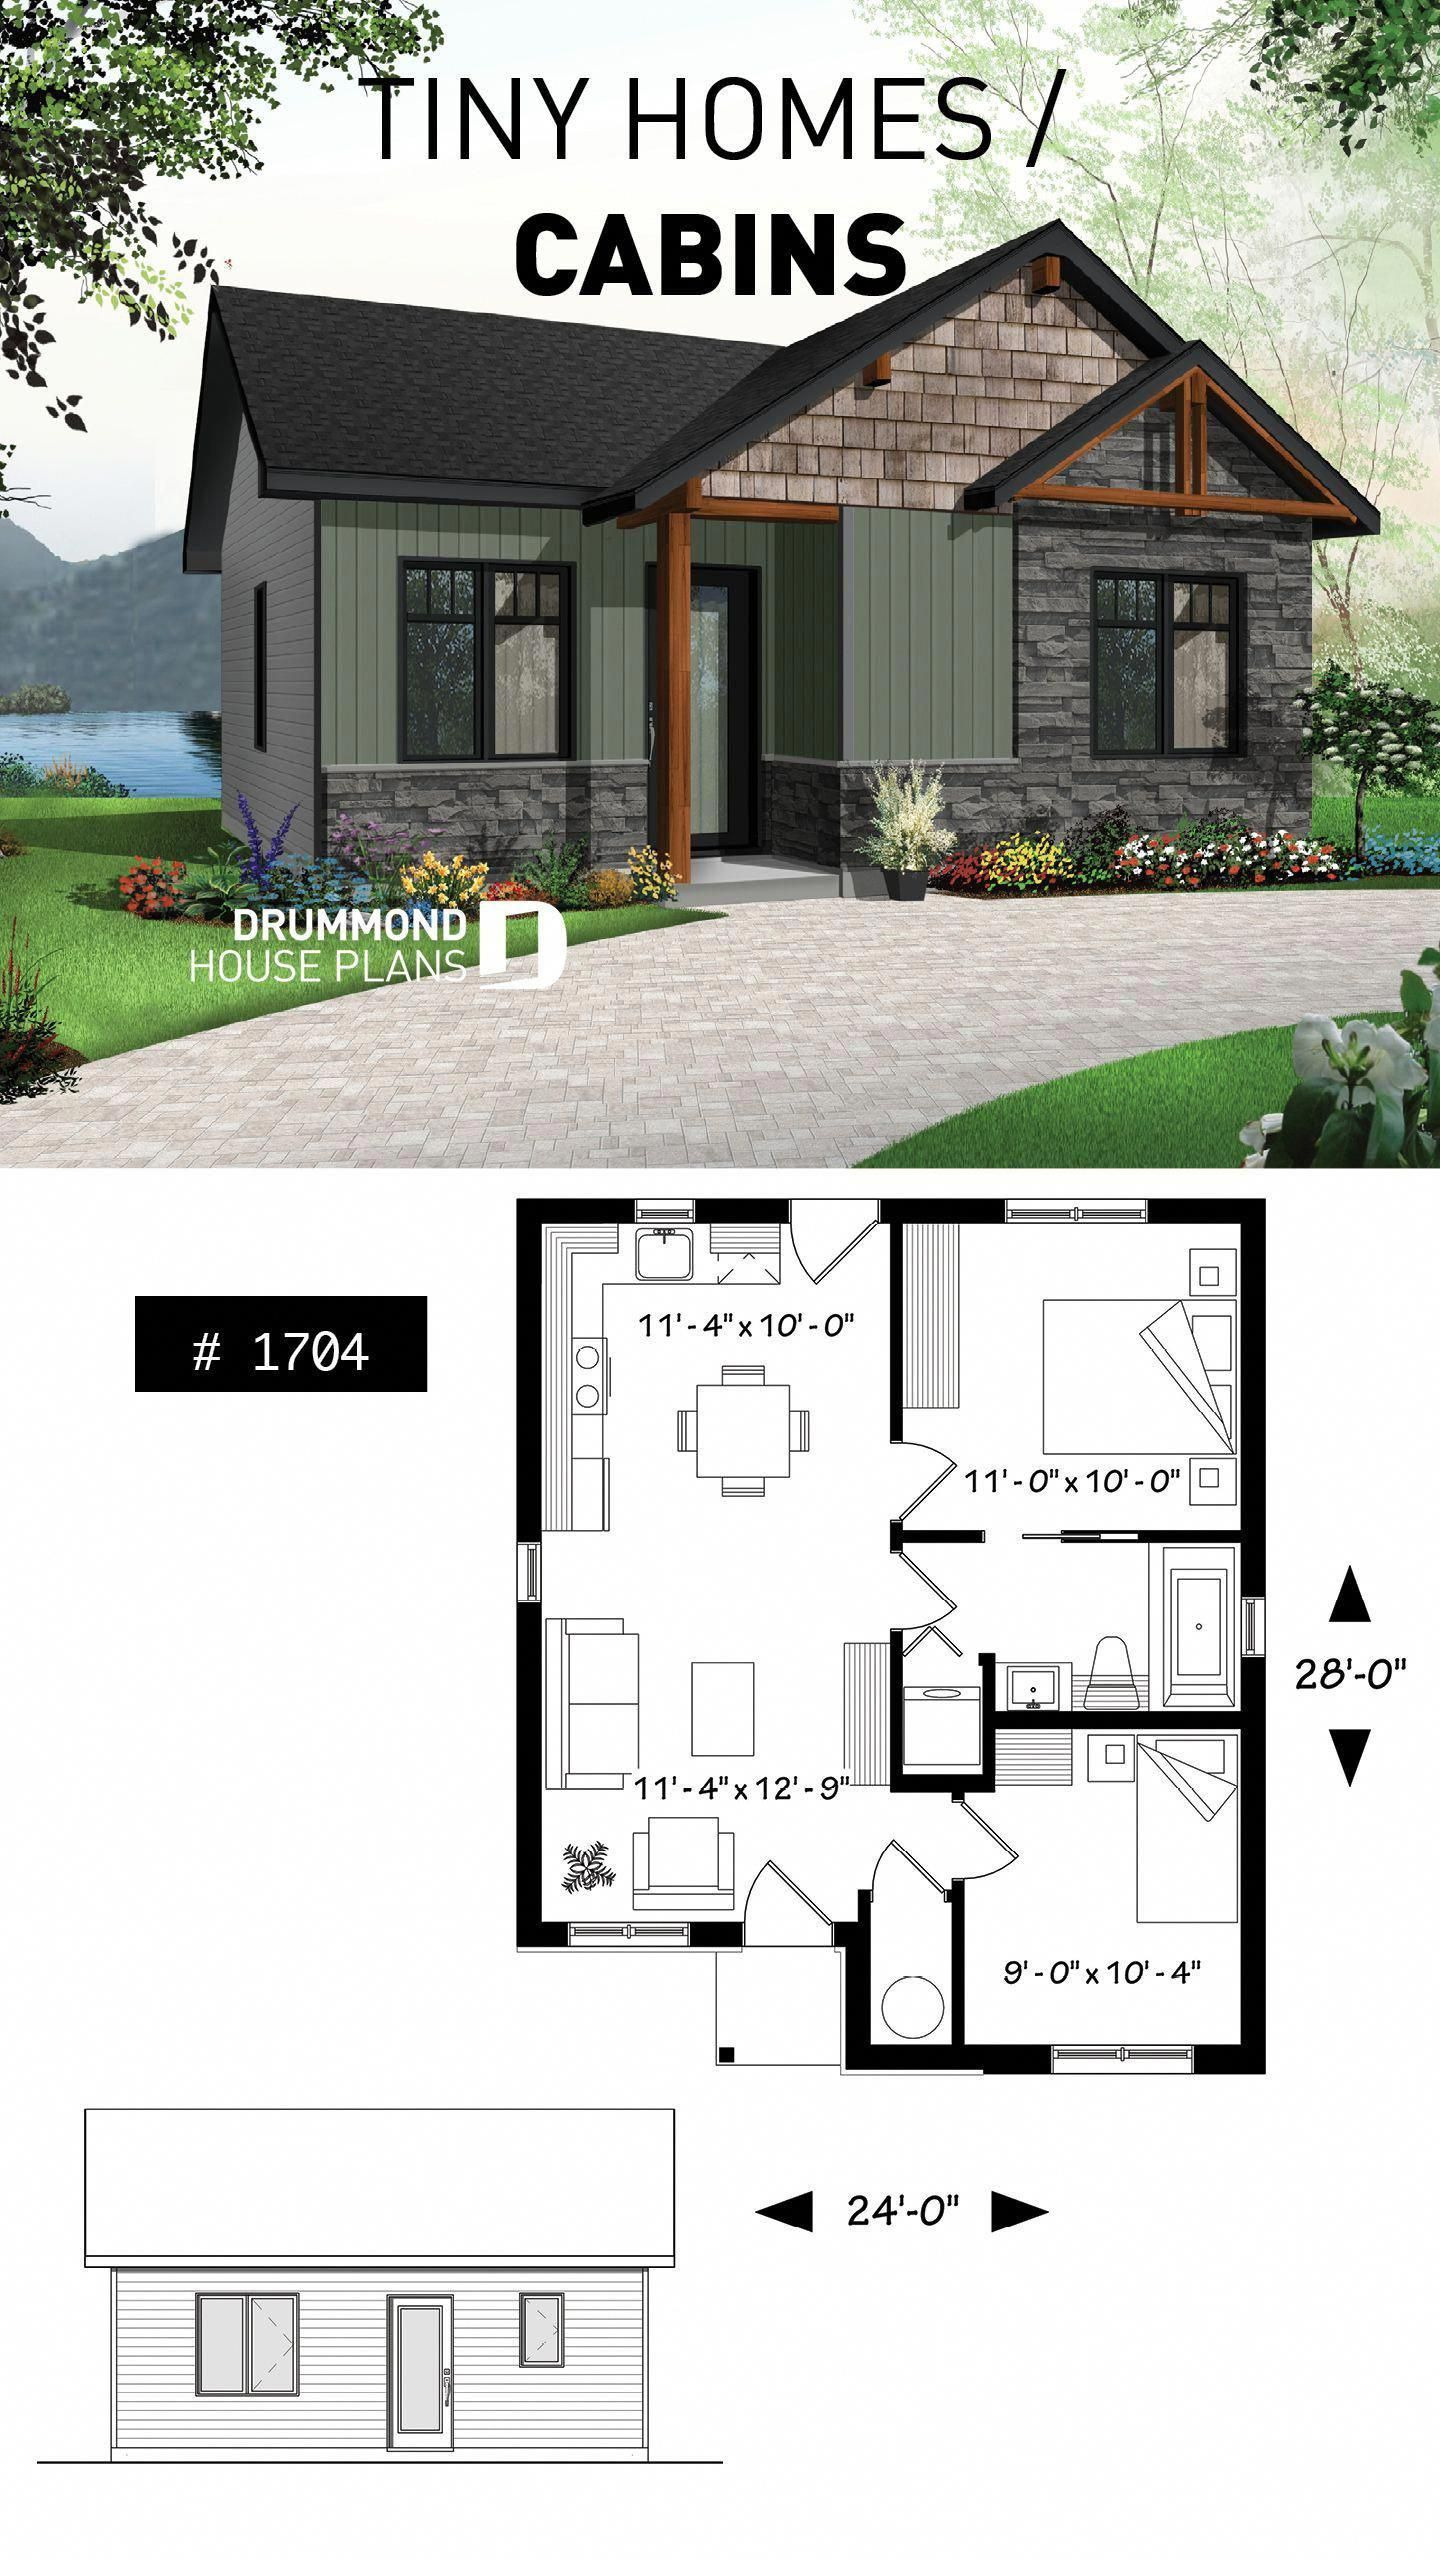 Small Home Plans Free New 5 Free Diy Tiny House Plans to Help You Live the Small